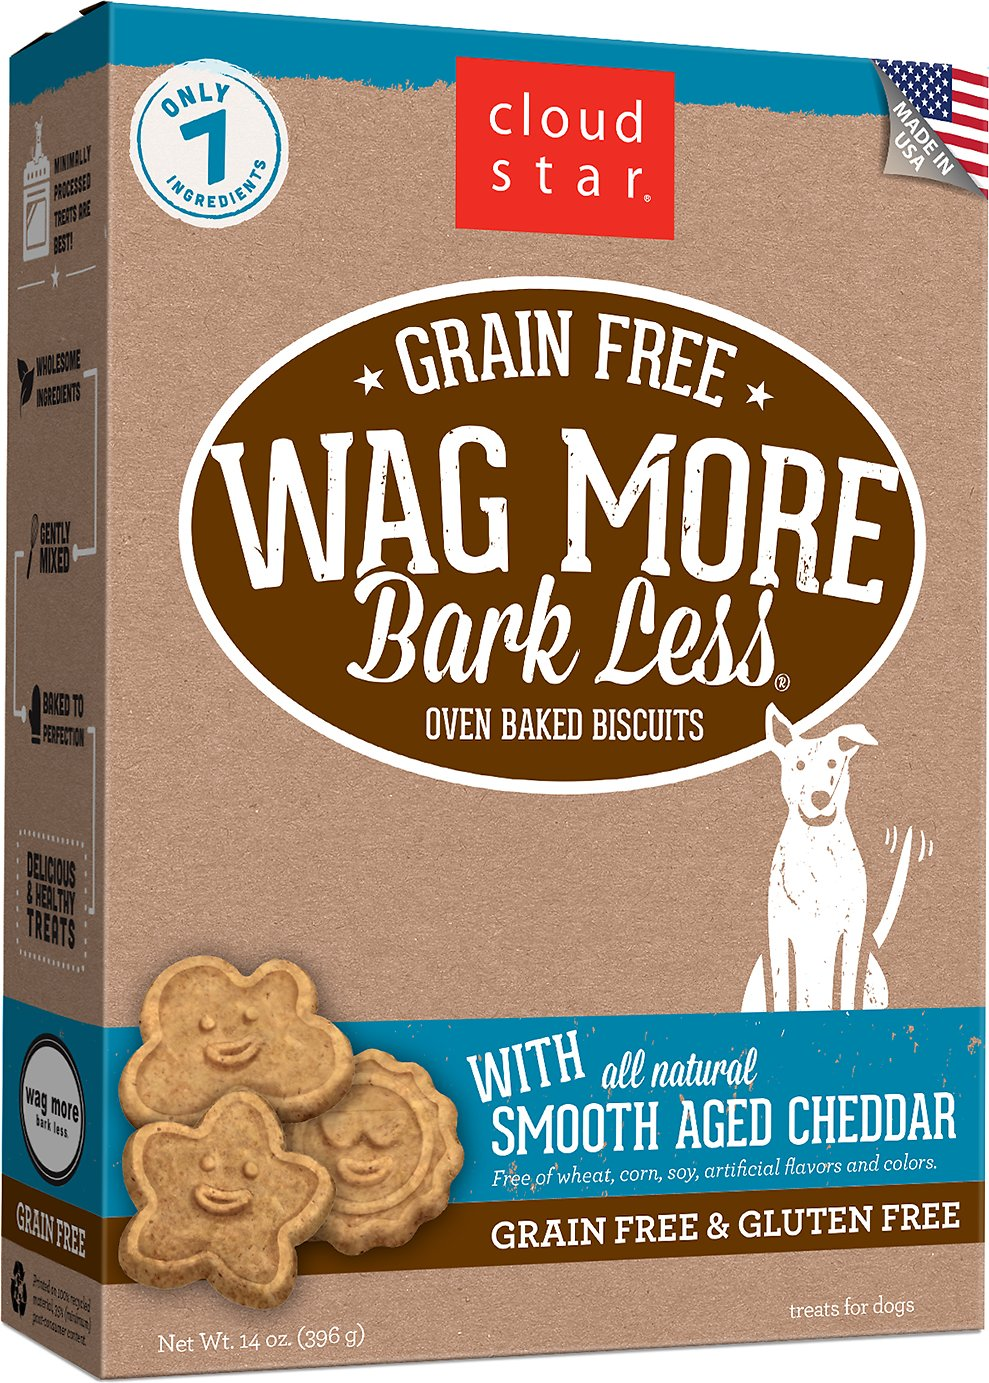 Cloud Star Wag More Bark Less Grain-Free Oven Baked with Smooth Aged Cheddar Dog Treats, 14-oz box